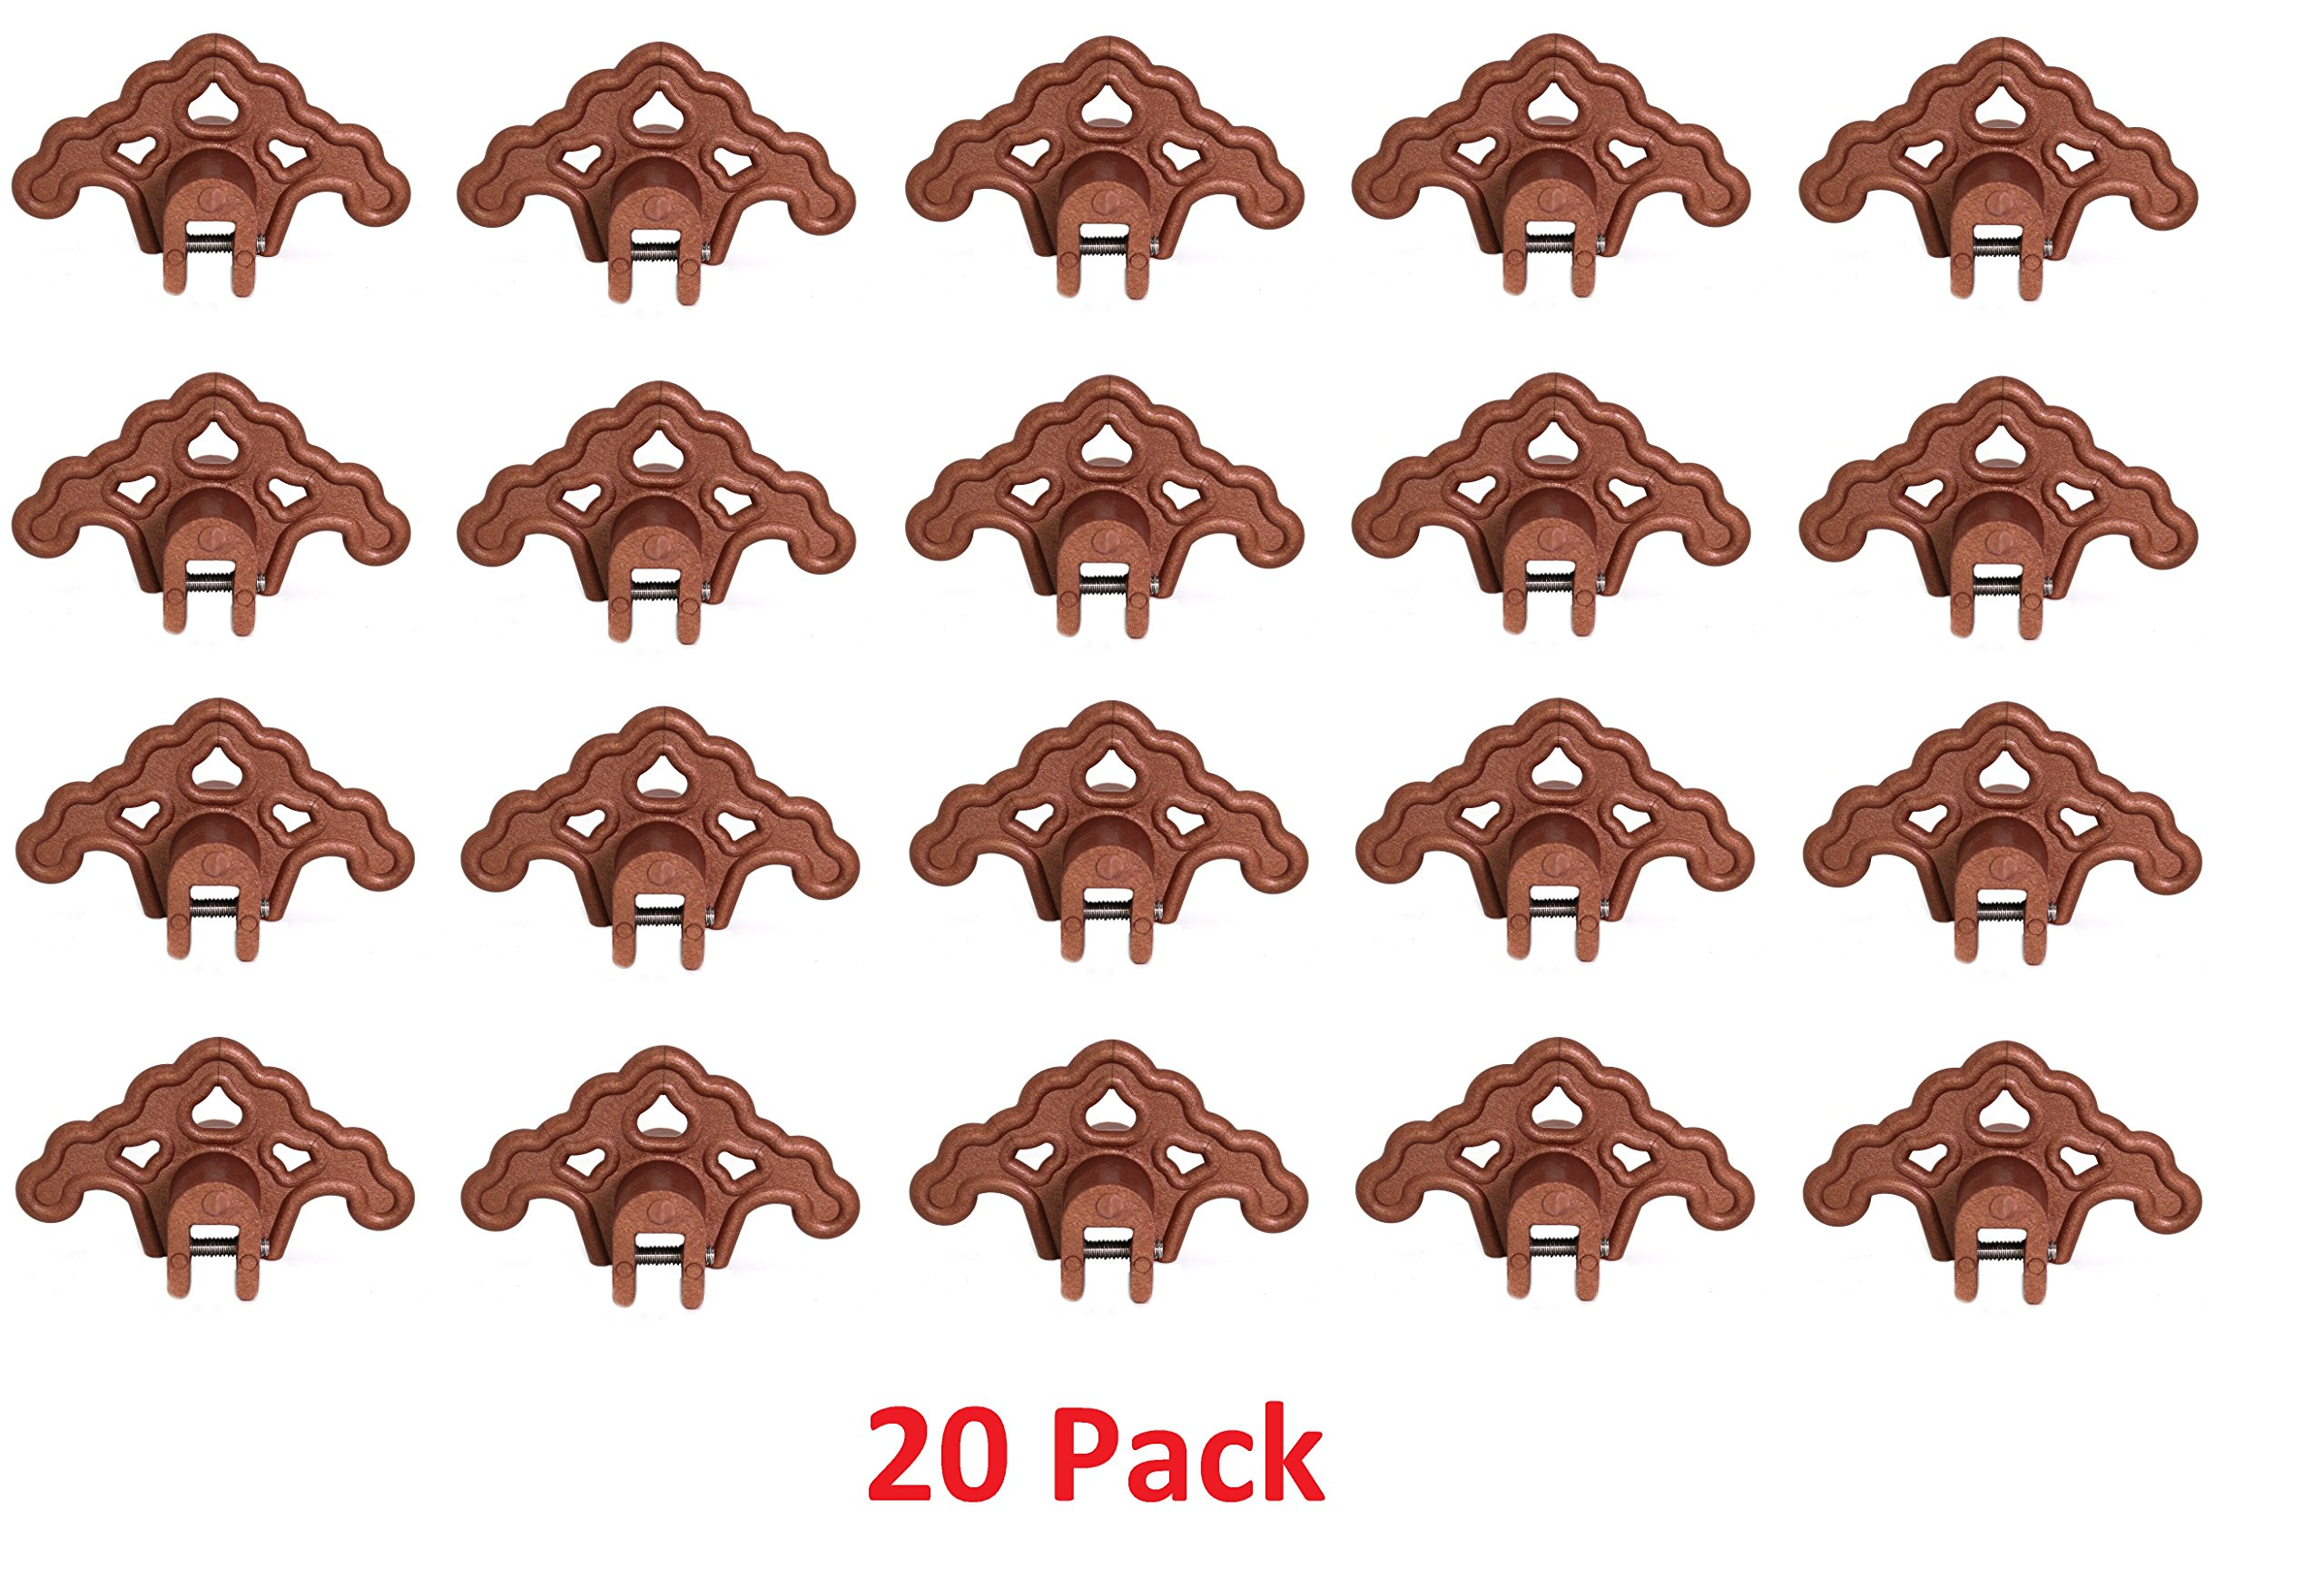 (20) PLASTIC BRONZE Roof Ice Guard Snow Guard Snow Stops for Standing Seam Metal Roofing by JSP Manufacturing